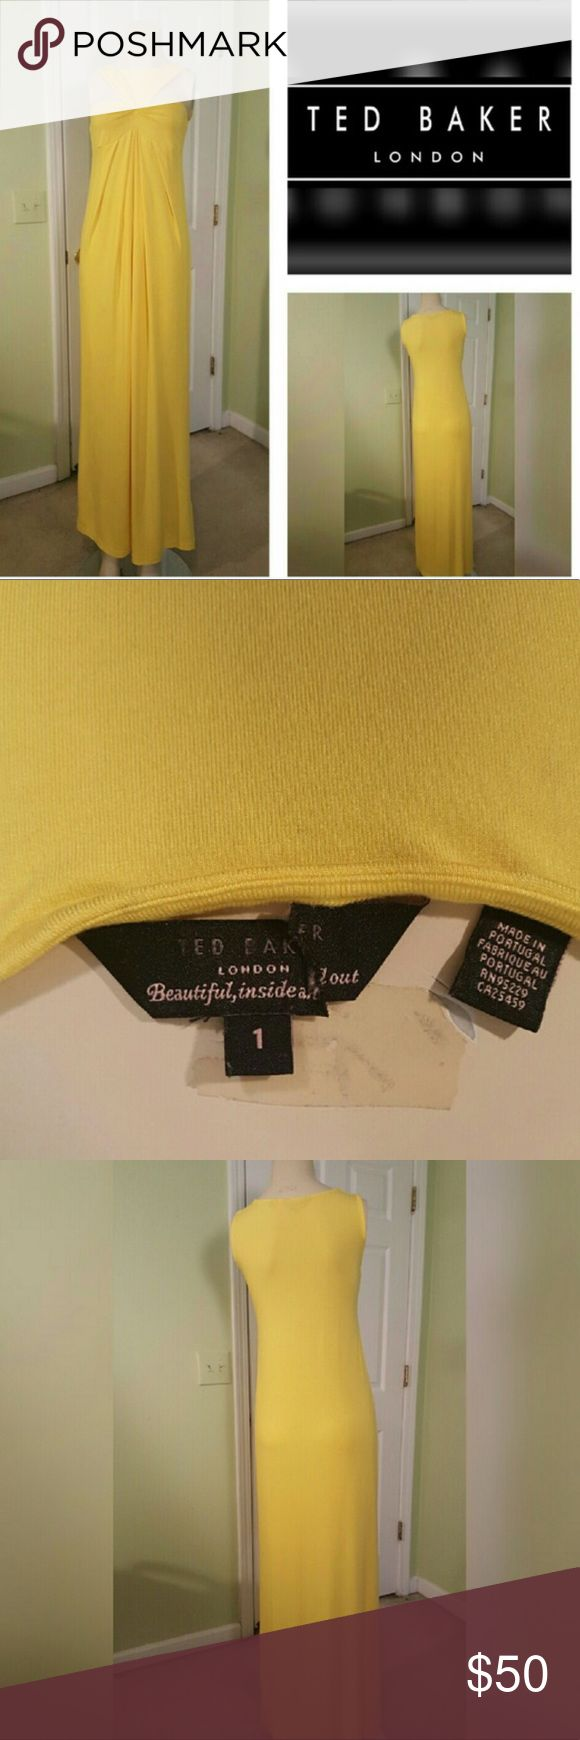 Ted Baker London Oro Yellow Maxi Dress Purchased from sample sale and never worn. US size 4 Ted Baker London Dresses Maxi